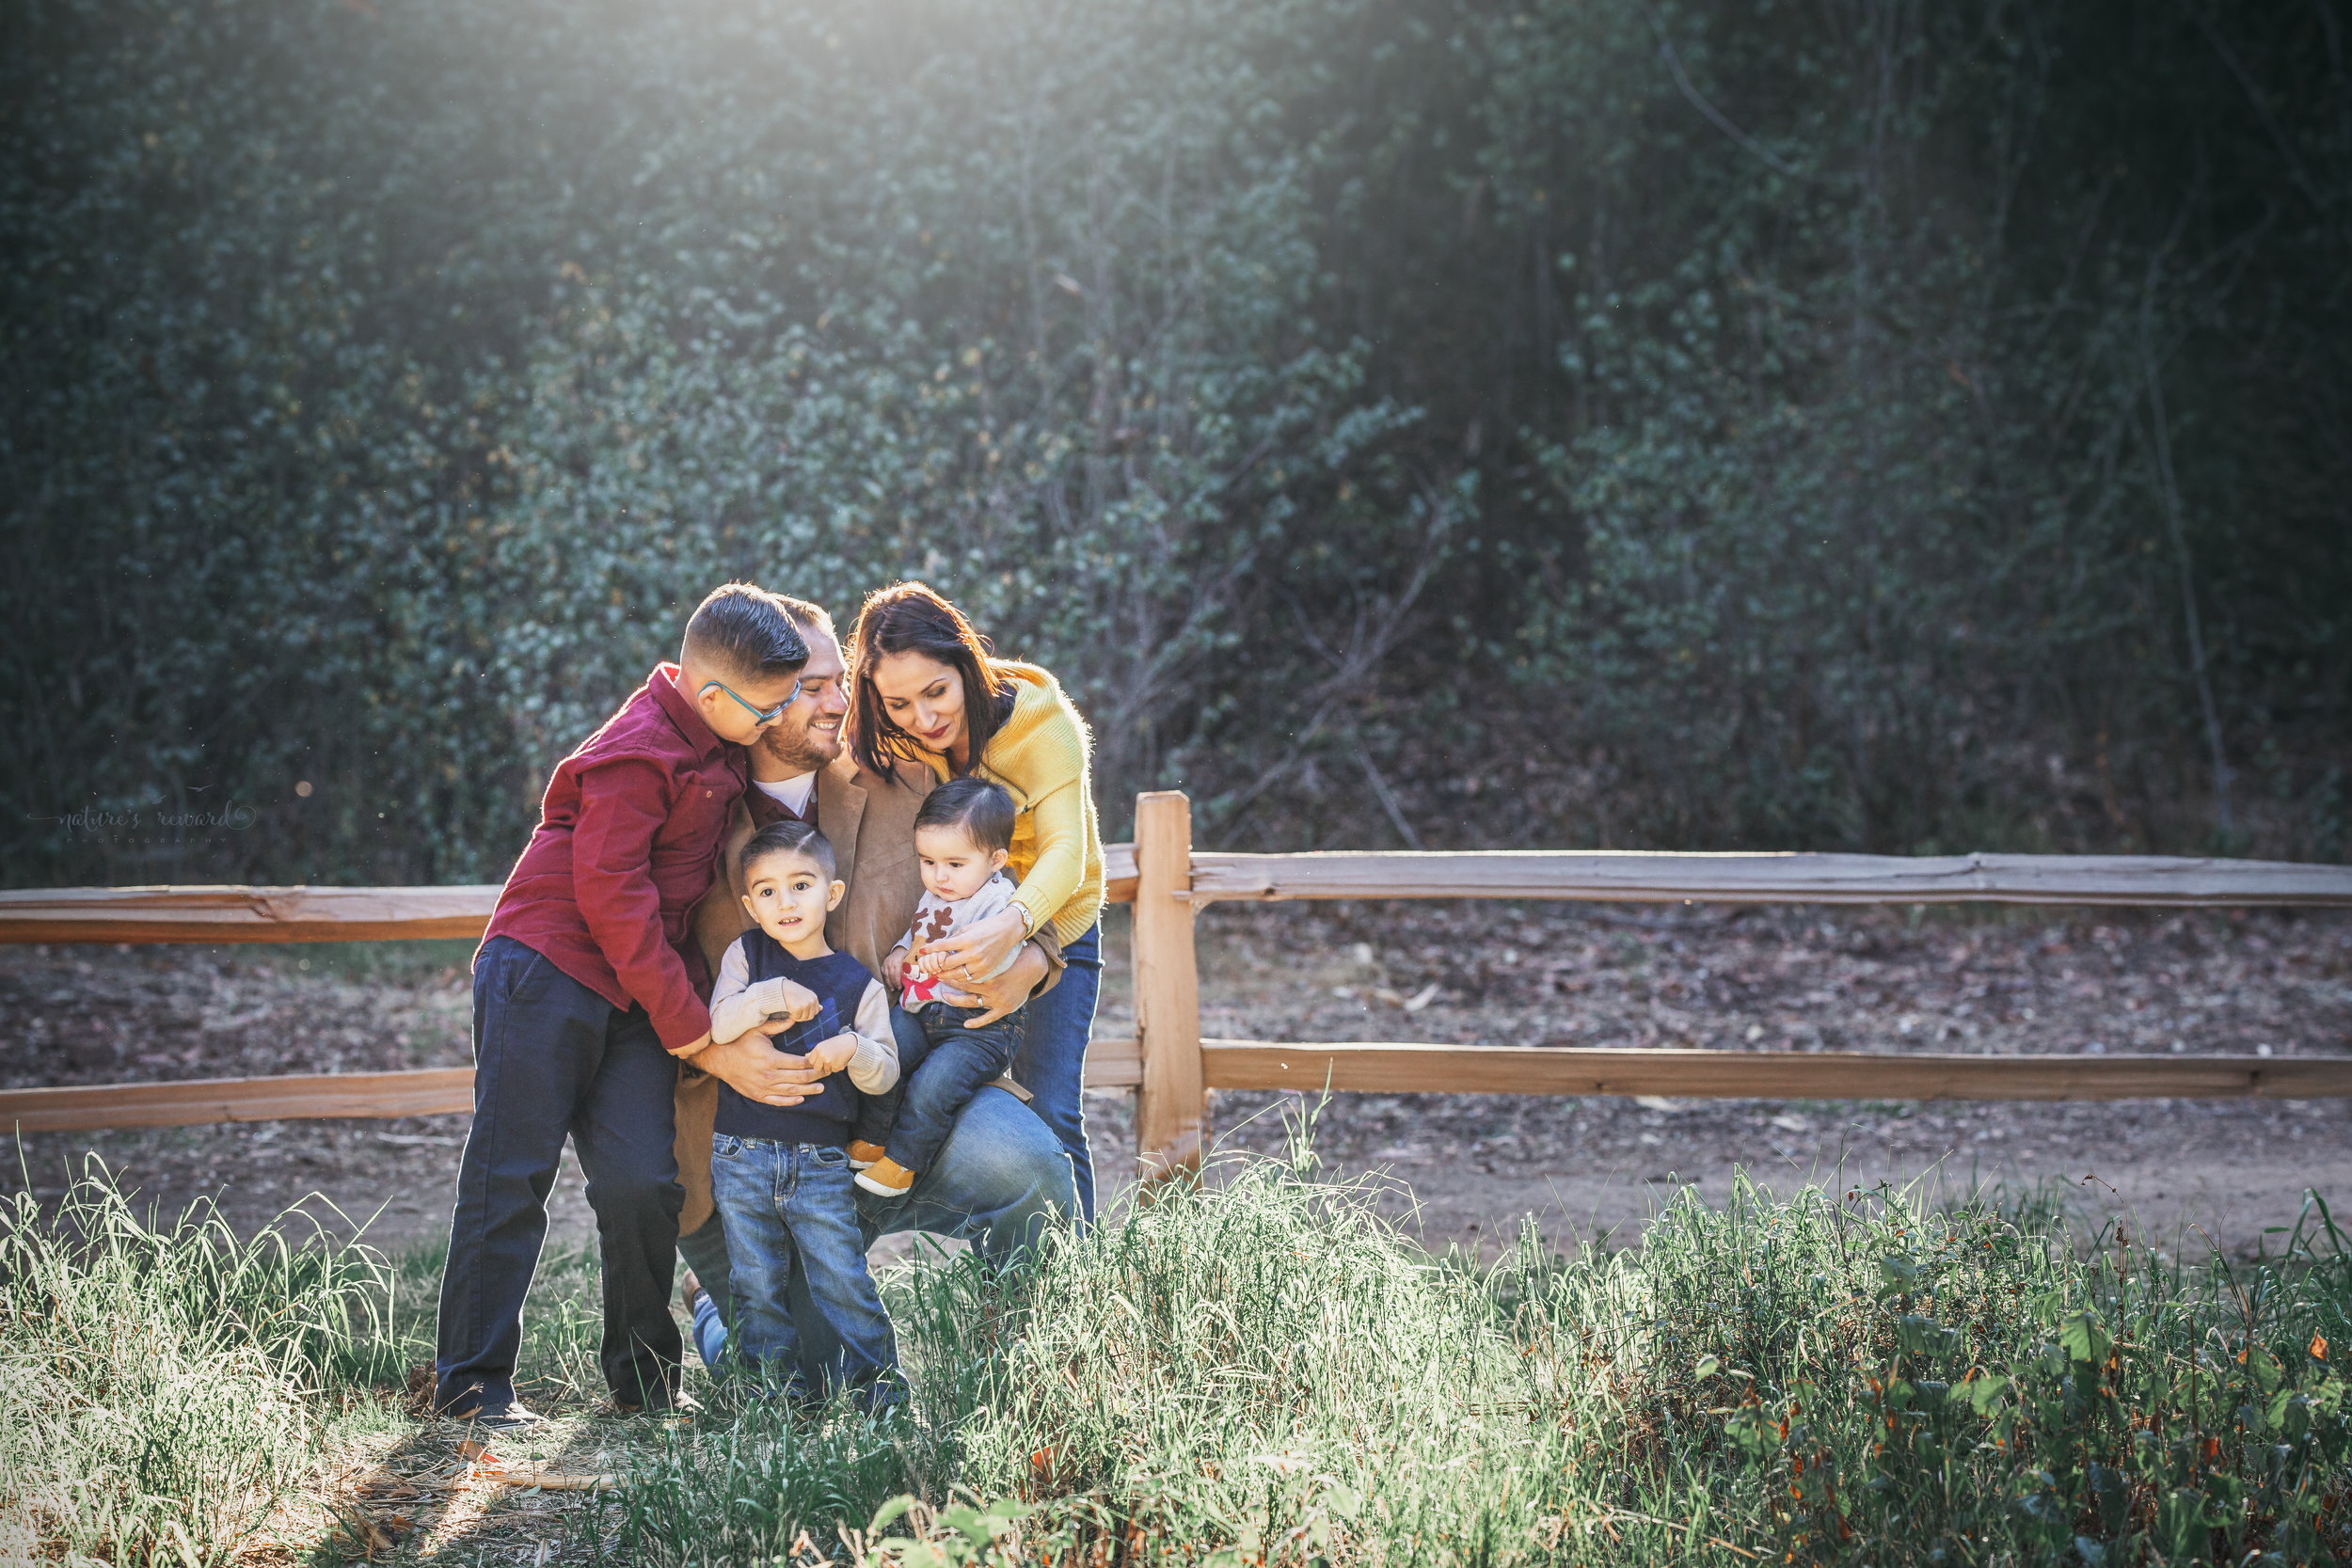 A candid of a family in a park setting by Nature's Reward Photography